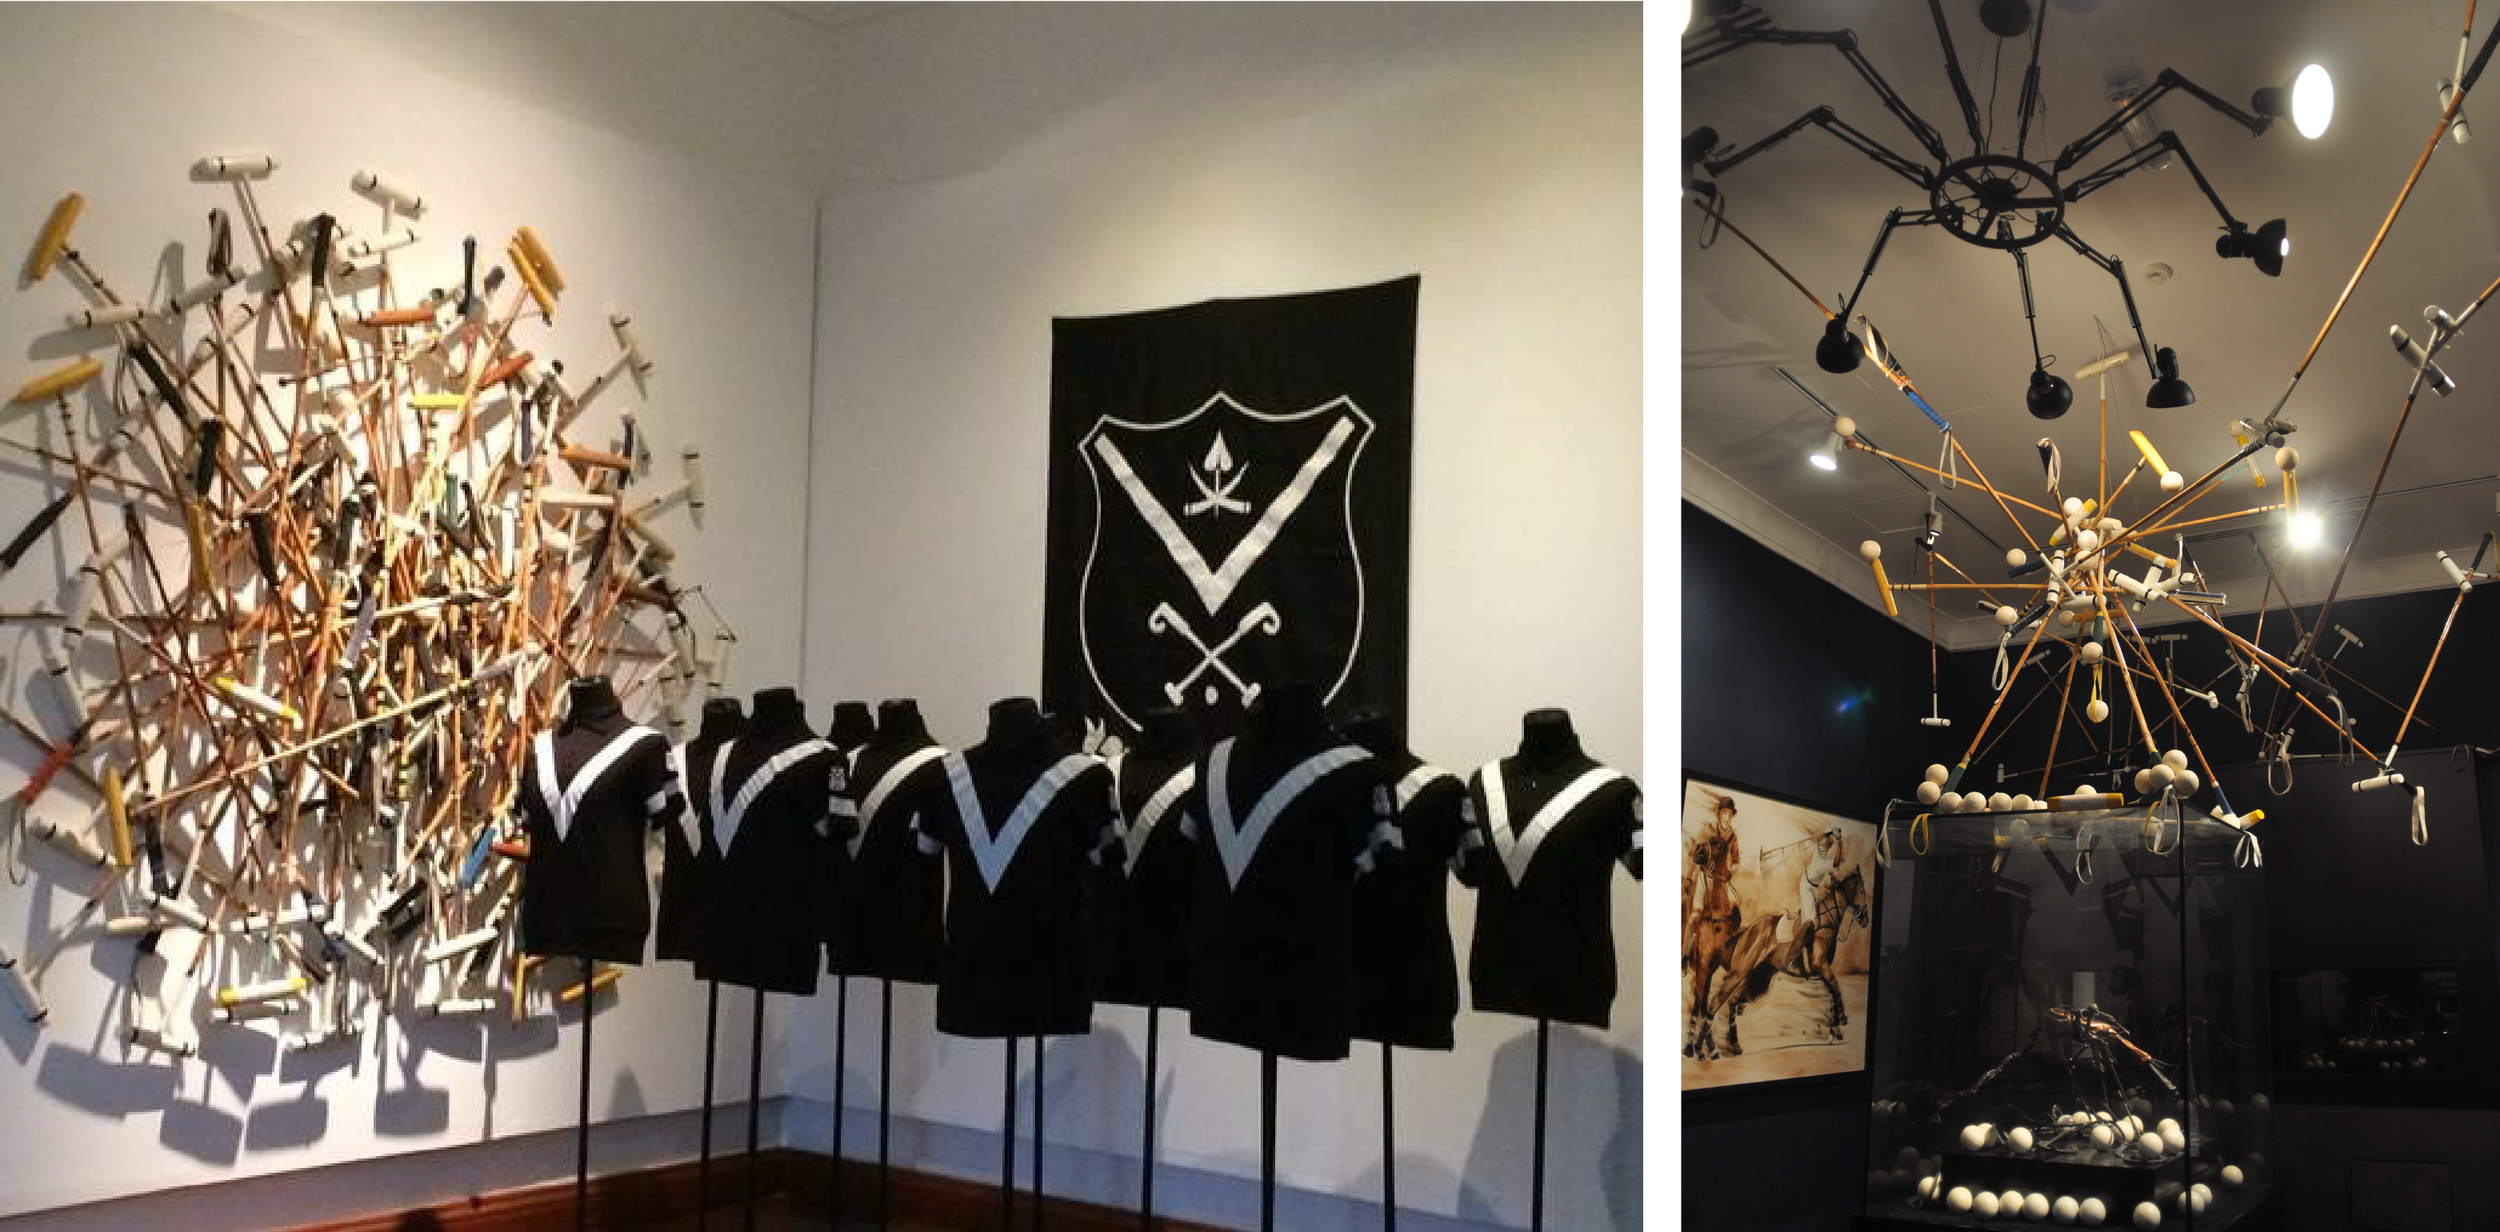 The Pahang Sultanate Gallery: A section dedicated to the Royal Pahang Polo Club. The installations of intertwined polo clubs reflect the intense rivalry and rush of adrenaline experienced during a polo match, especially when some of the world's top polo teams visit Pekan annually to battle for the championship trophy.